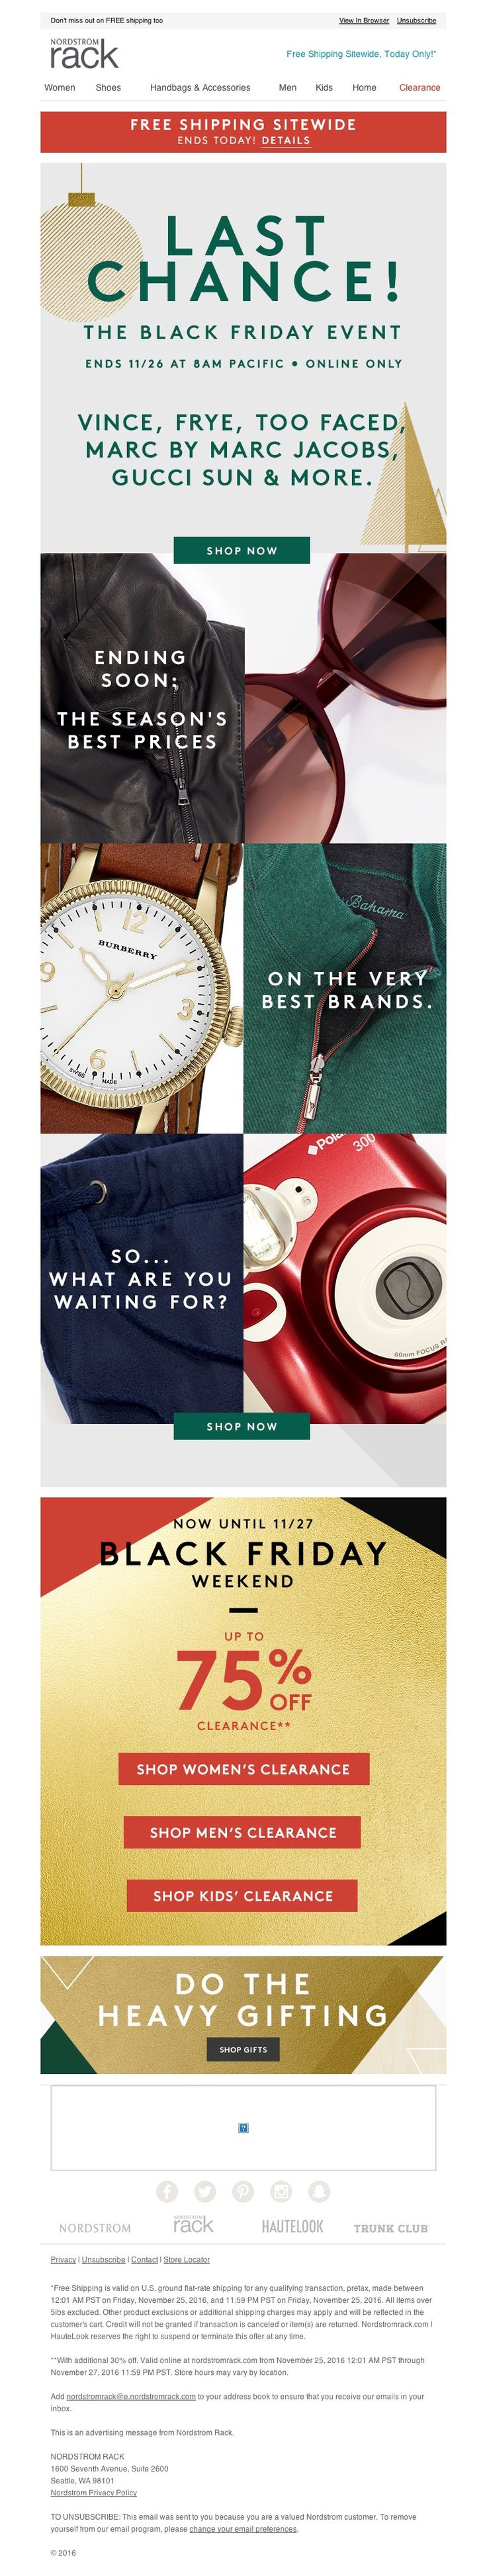 Nordstrom Rack - Vince, Converse & more—the Black Friday Event ends soon